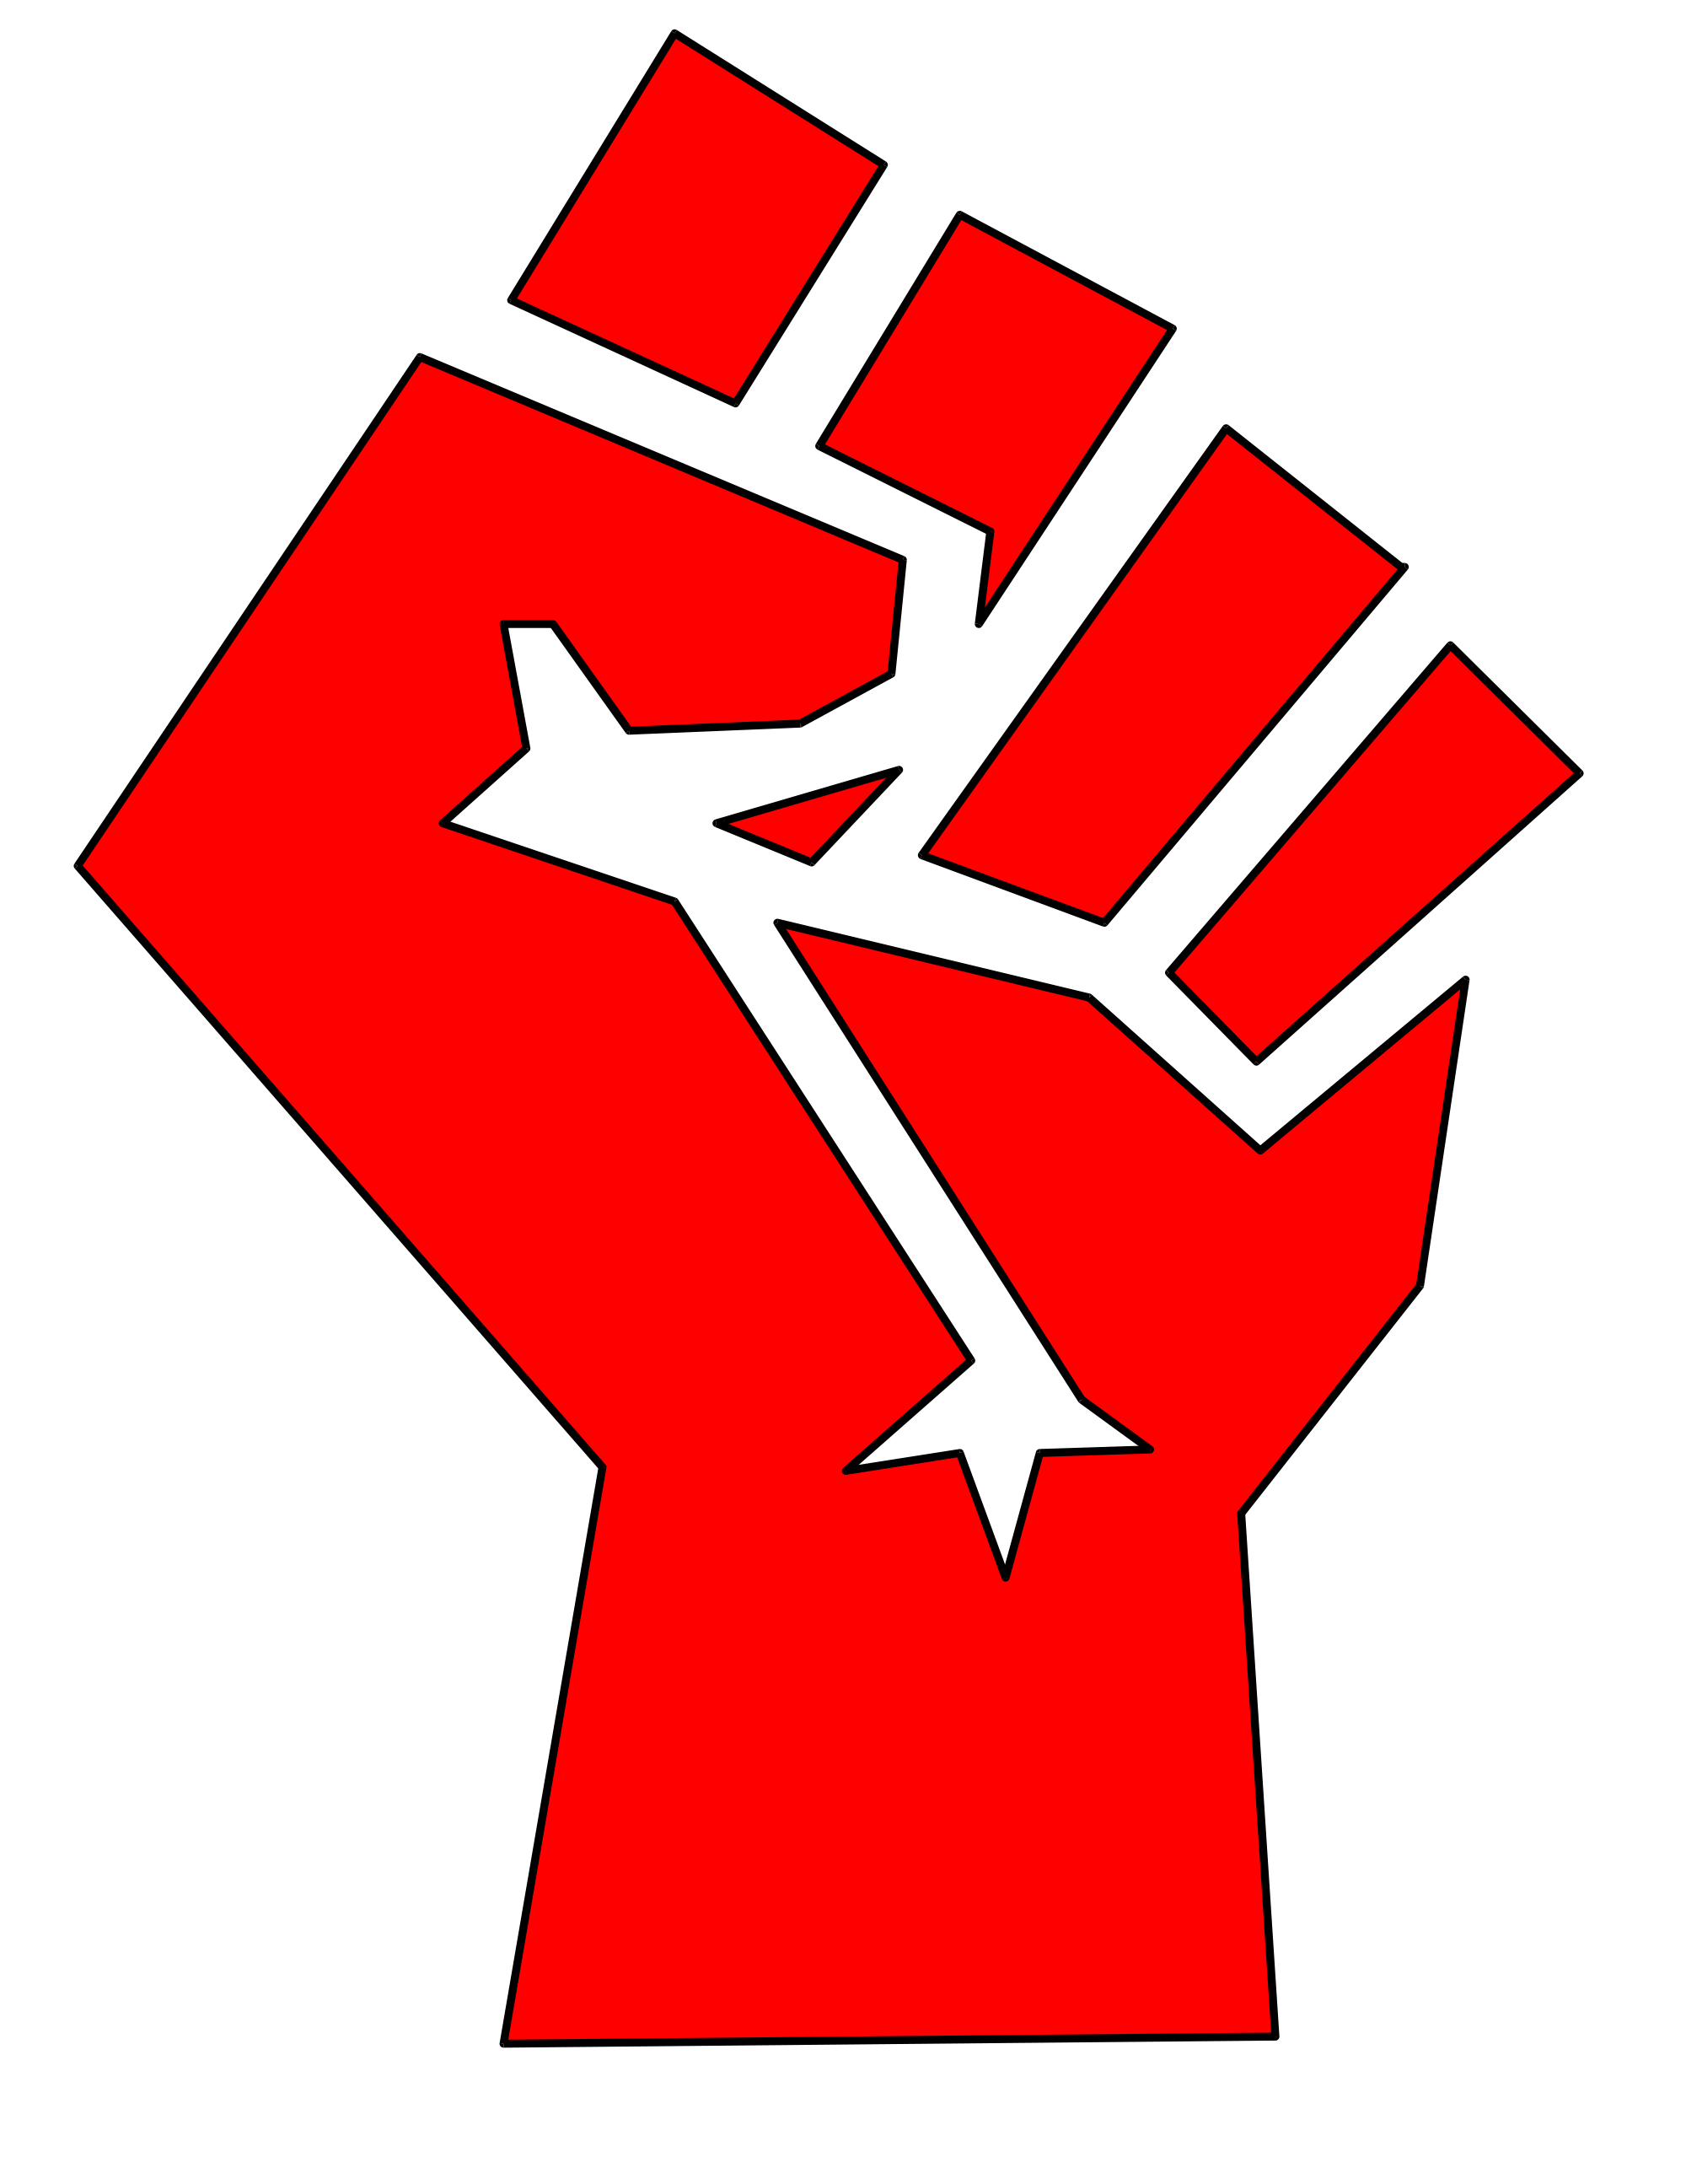 Fist clipart equality. Svg punch huge